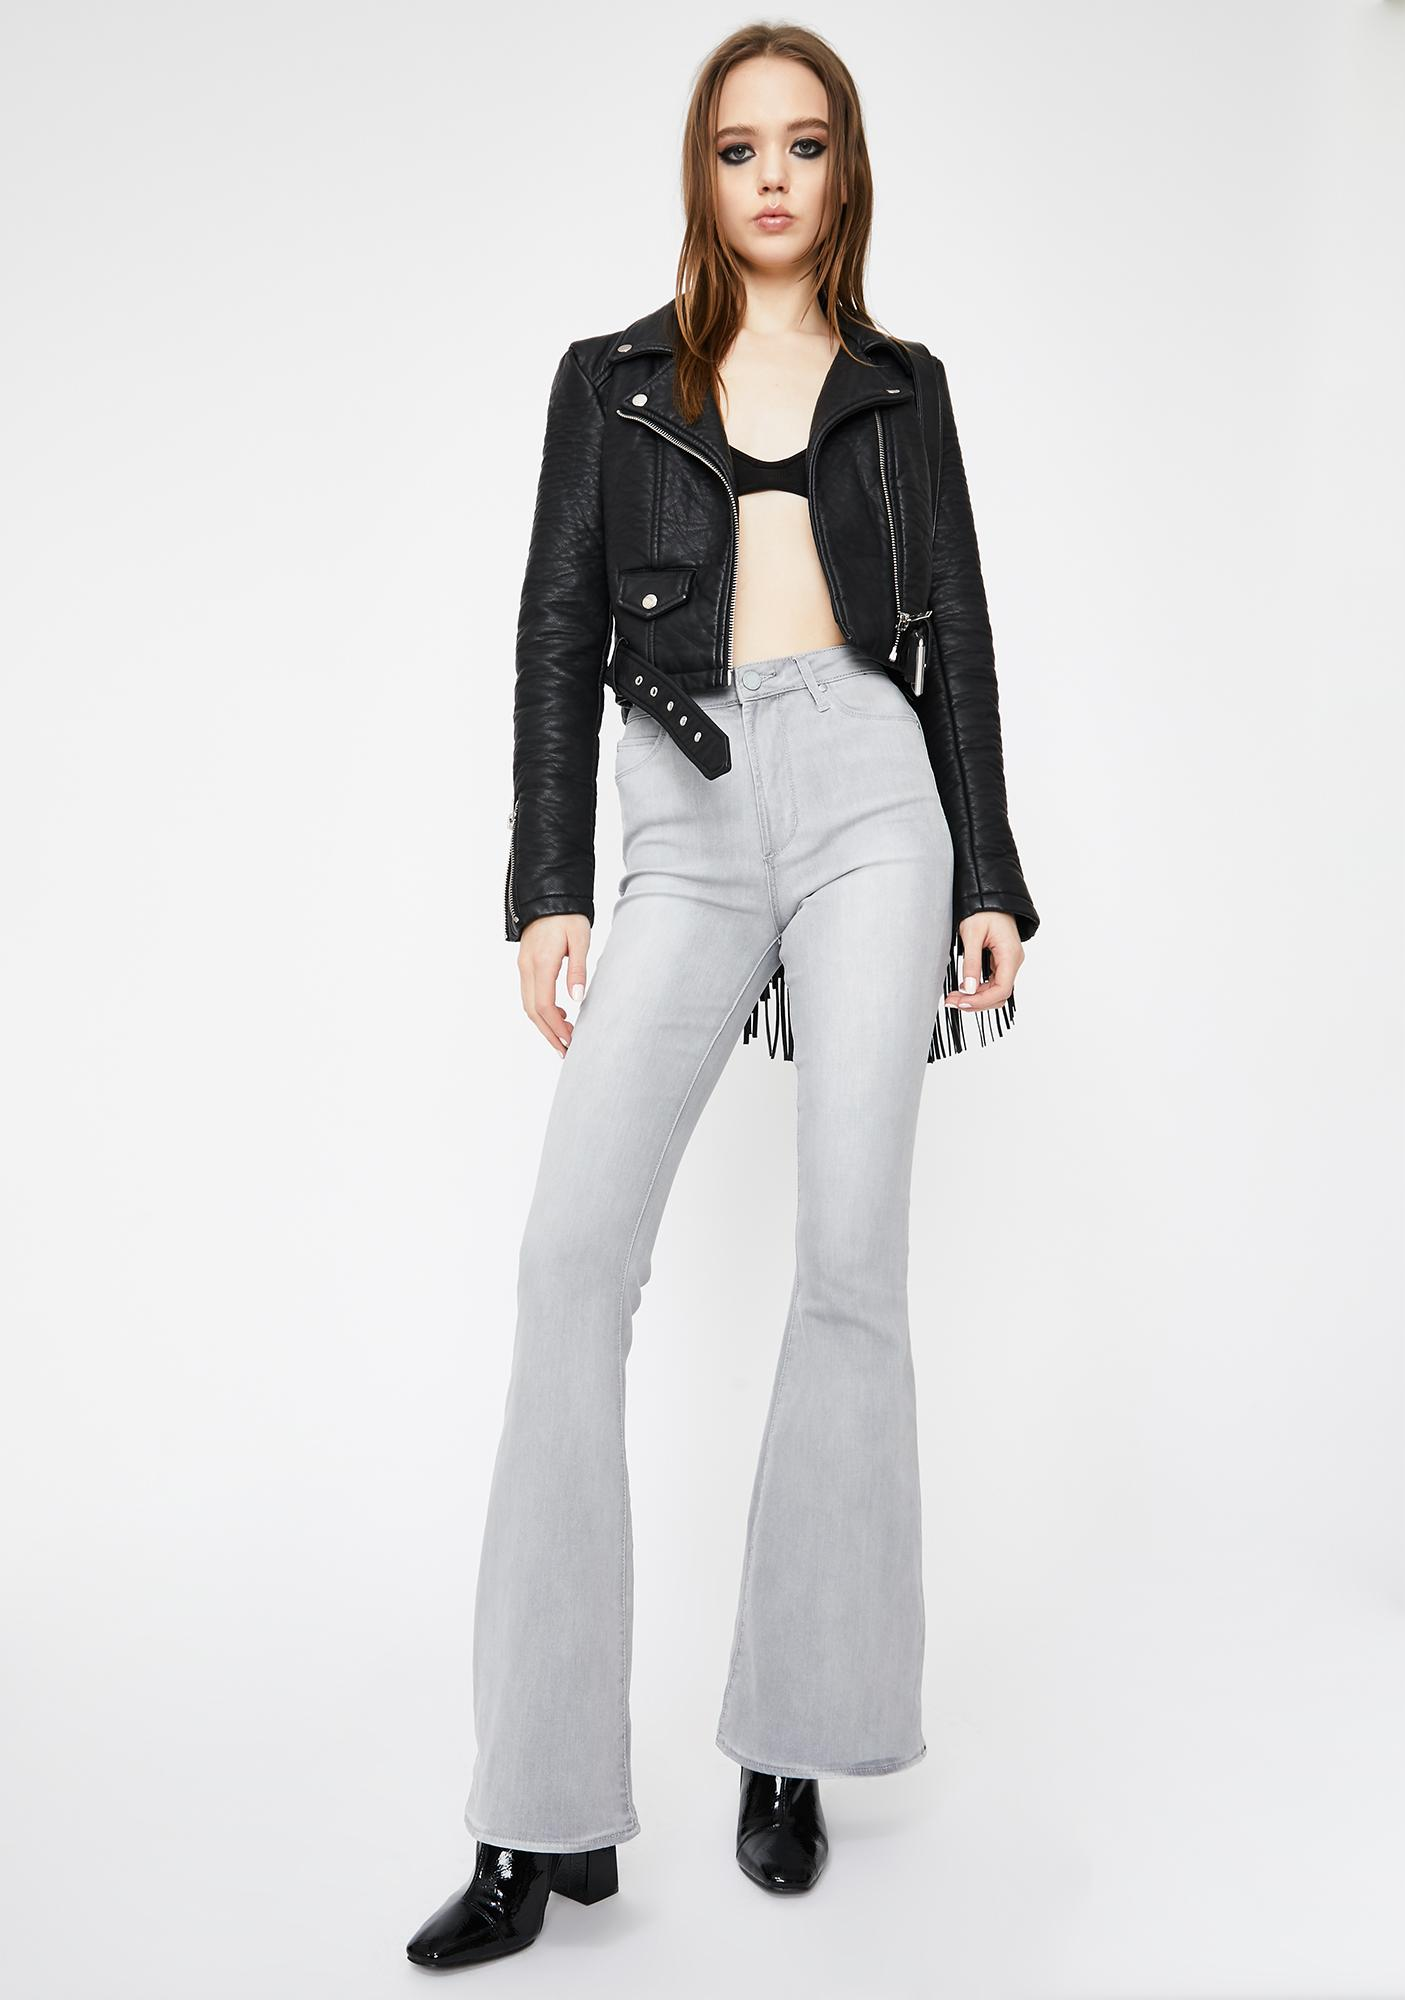 Articles of Society Harbour Bridgette Flare Jeans